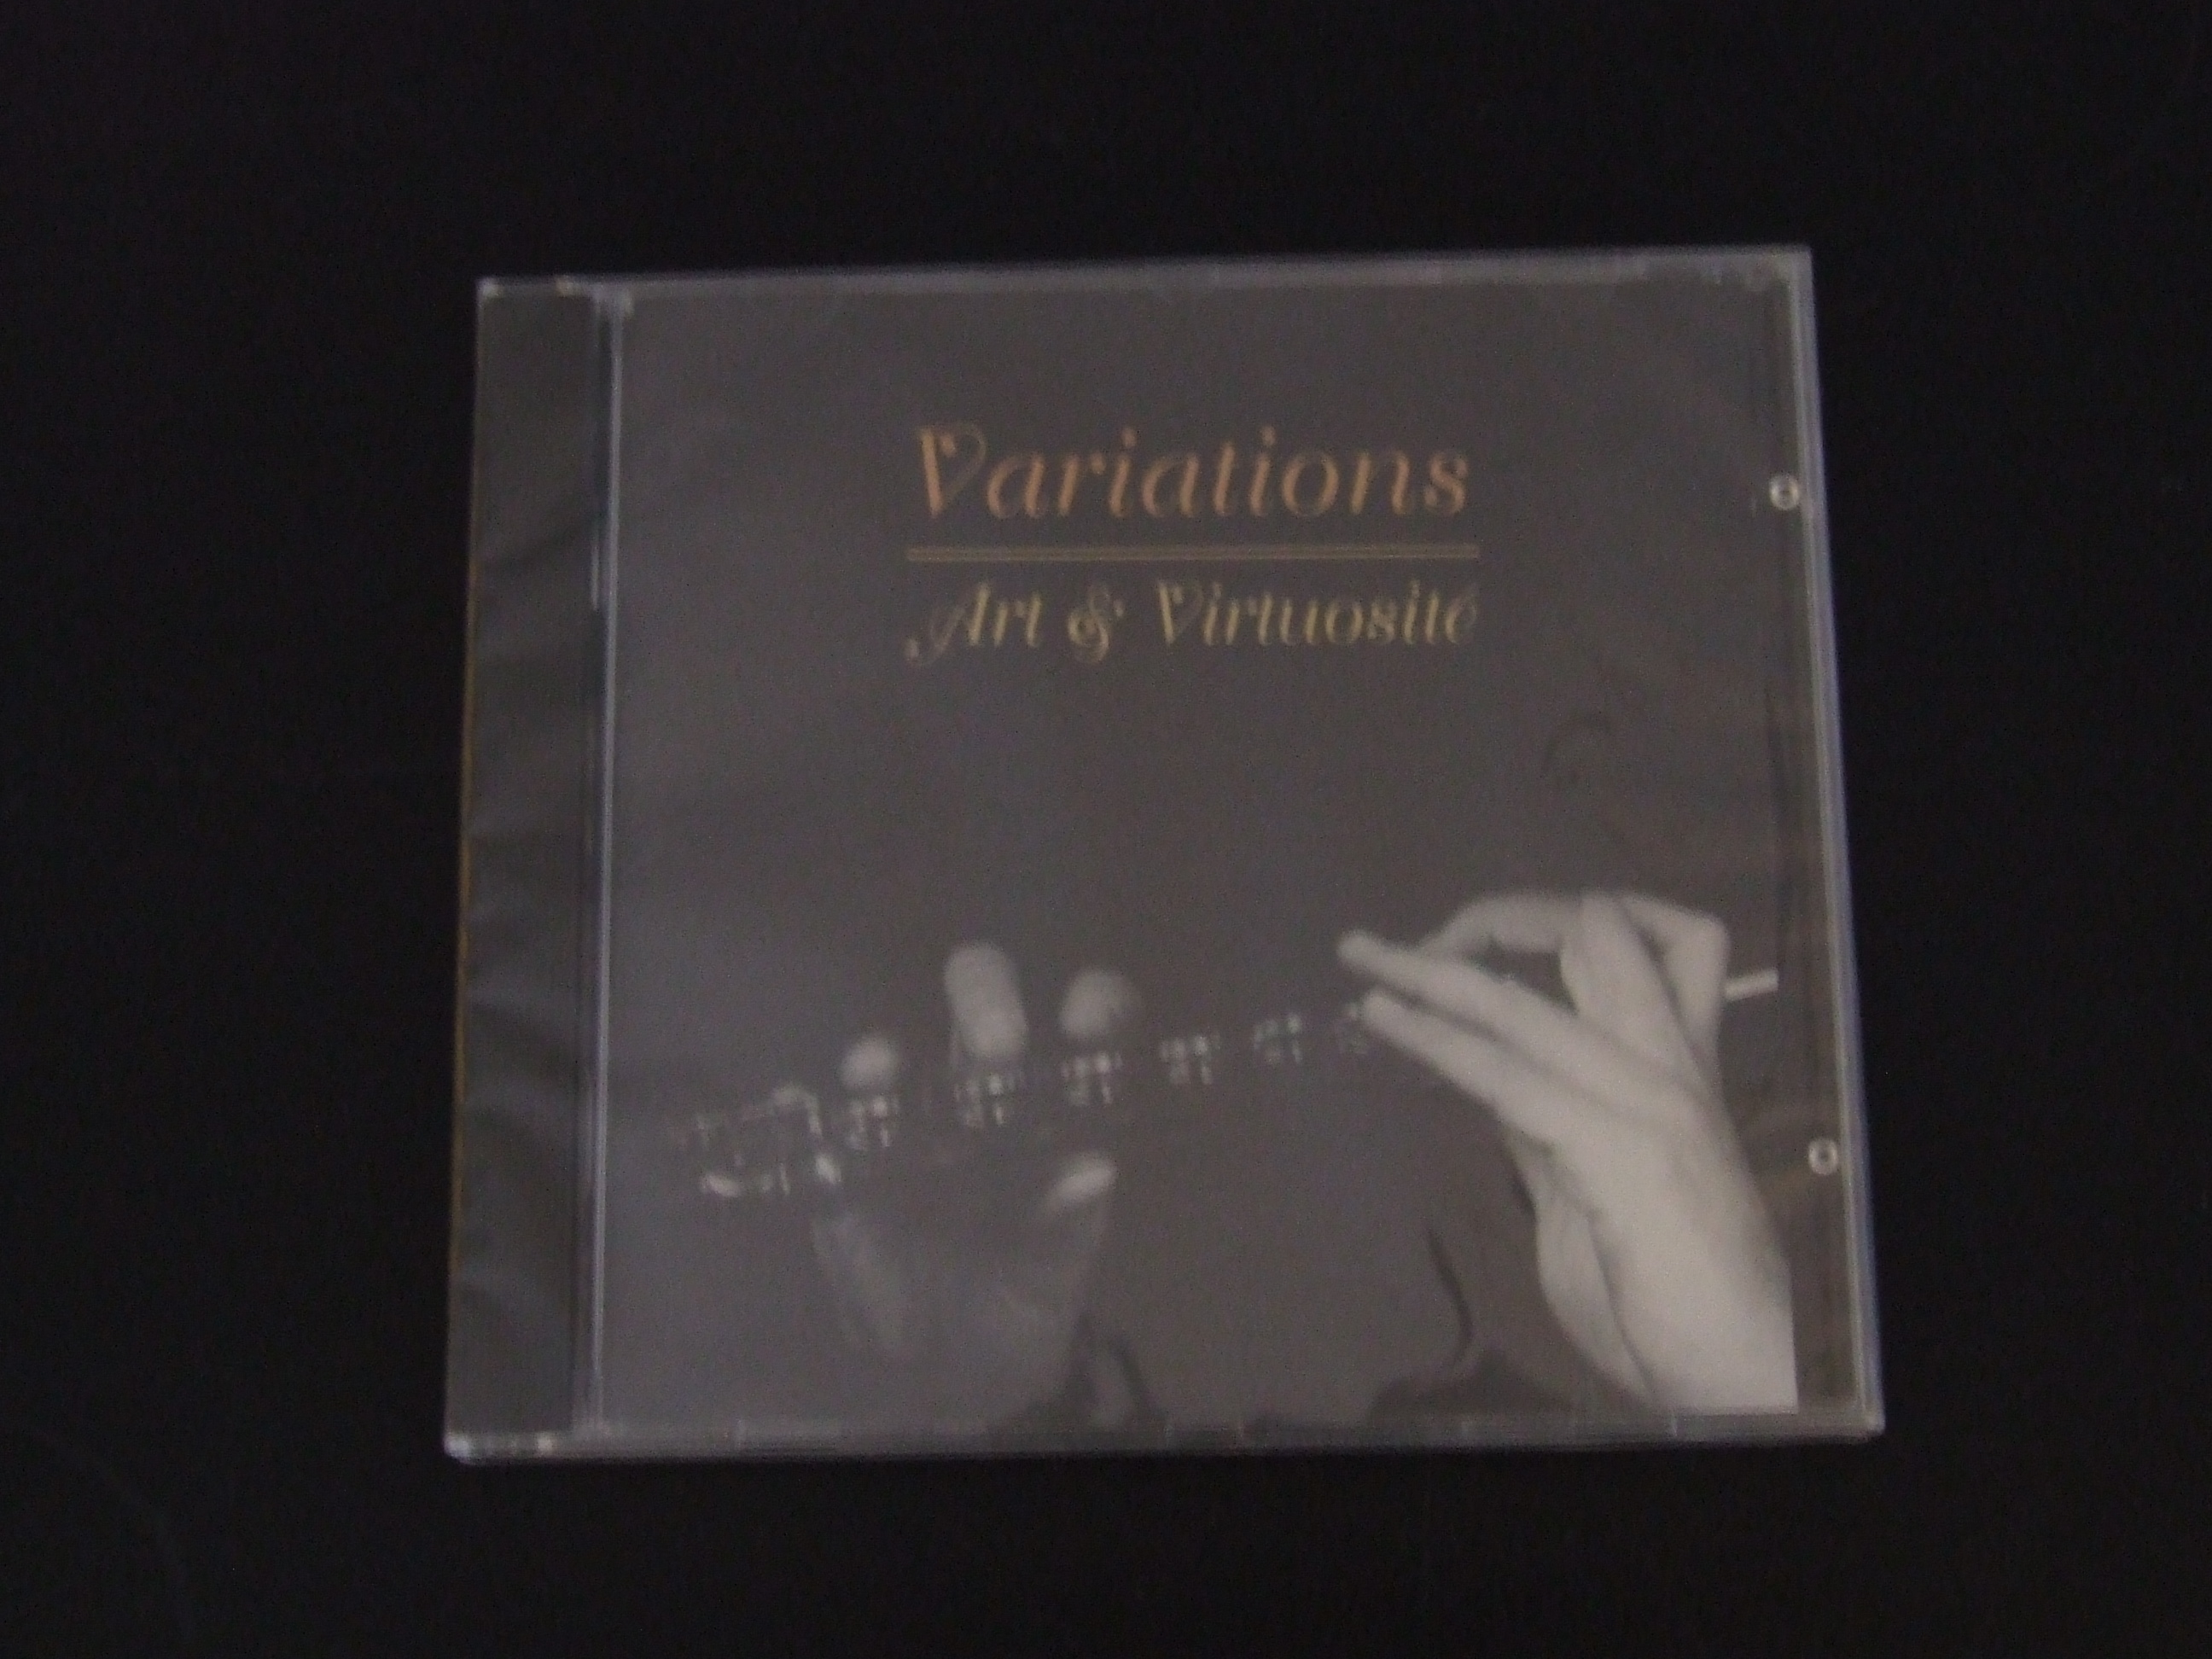 CD Variations - Art et virtuosité